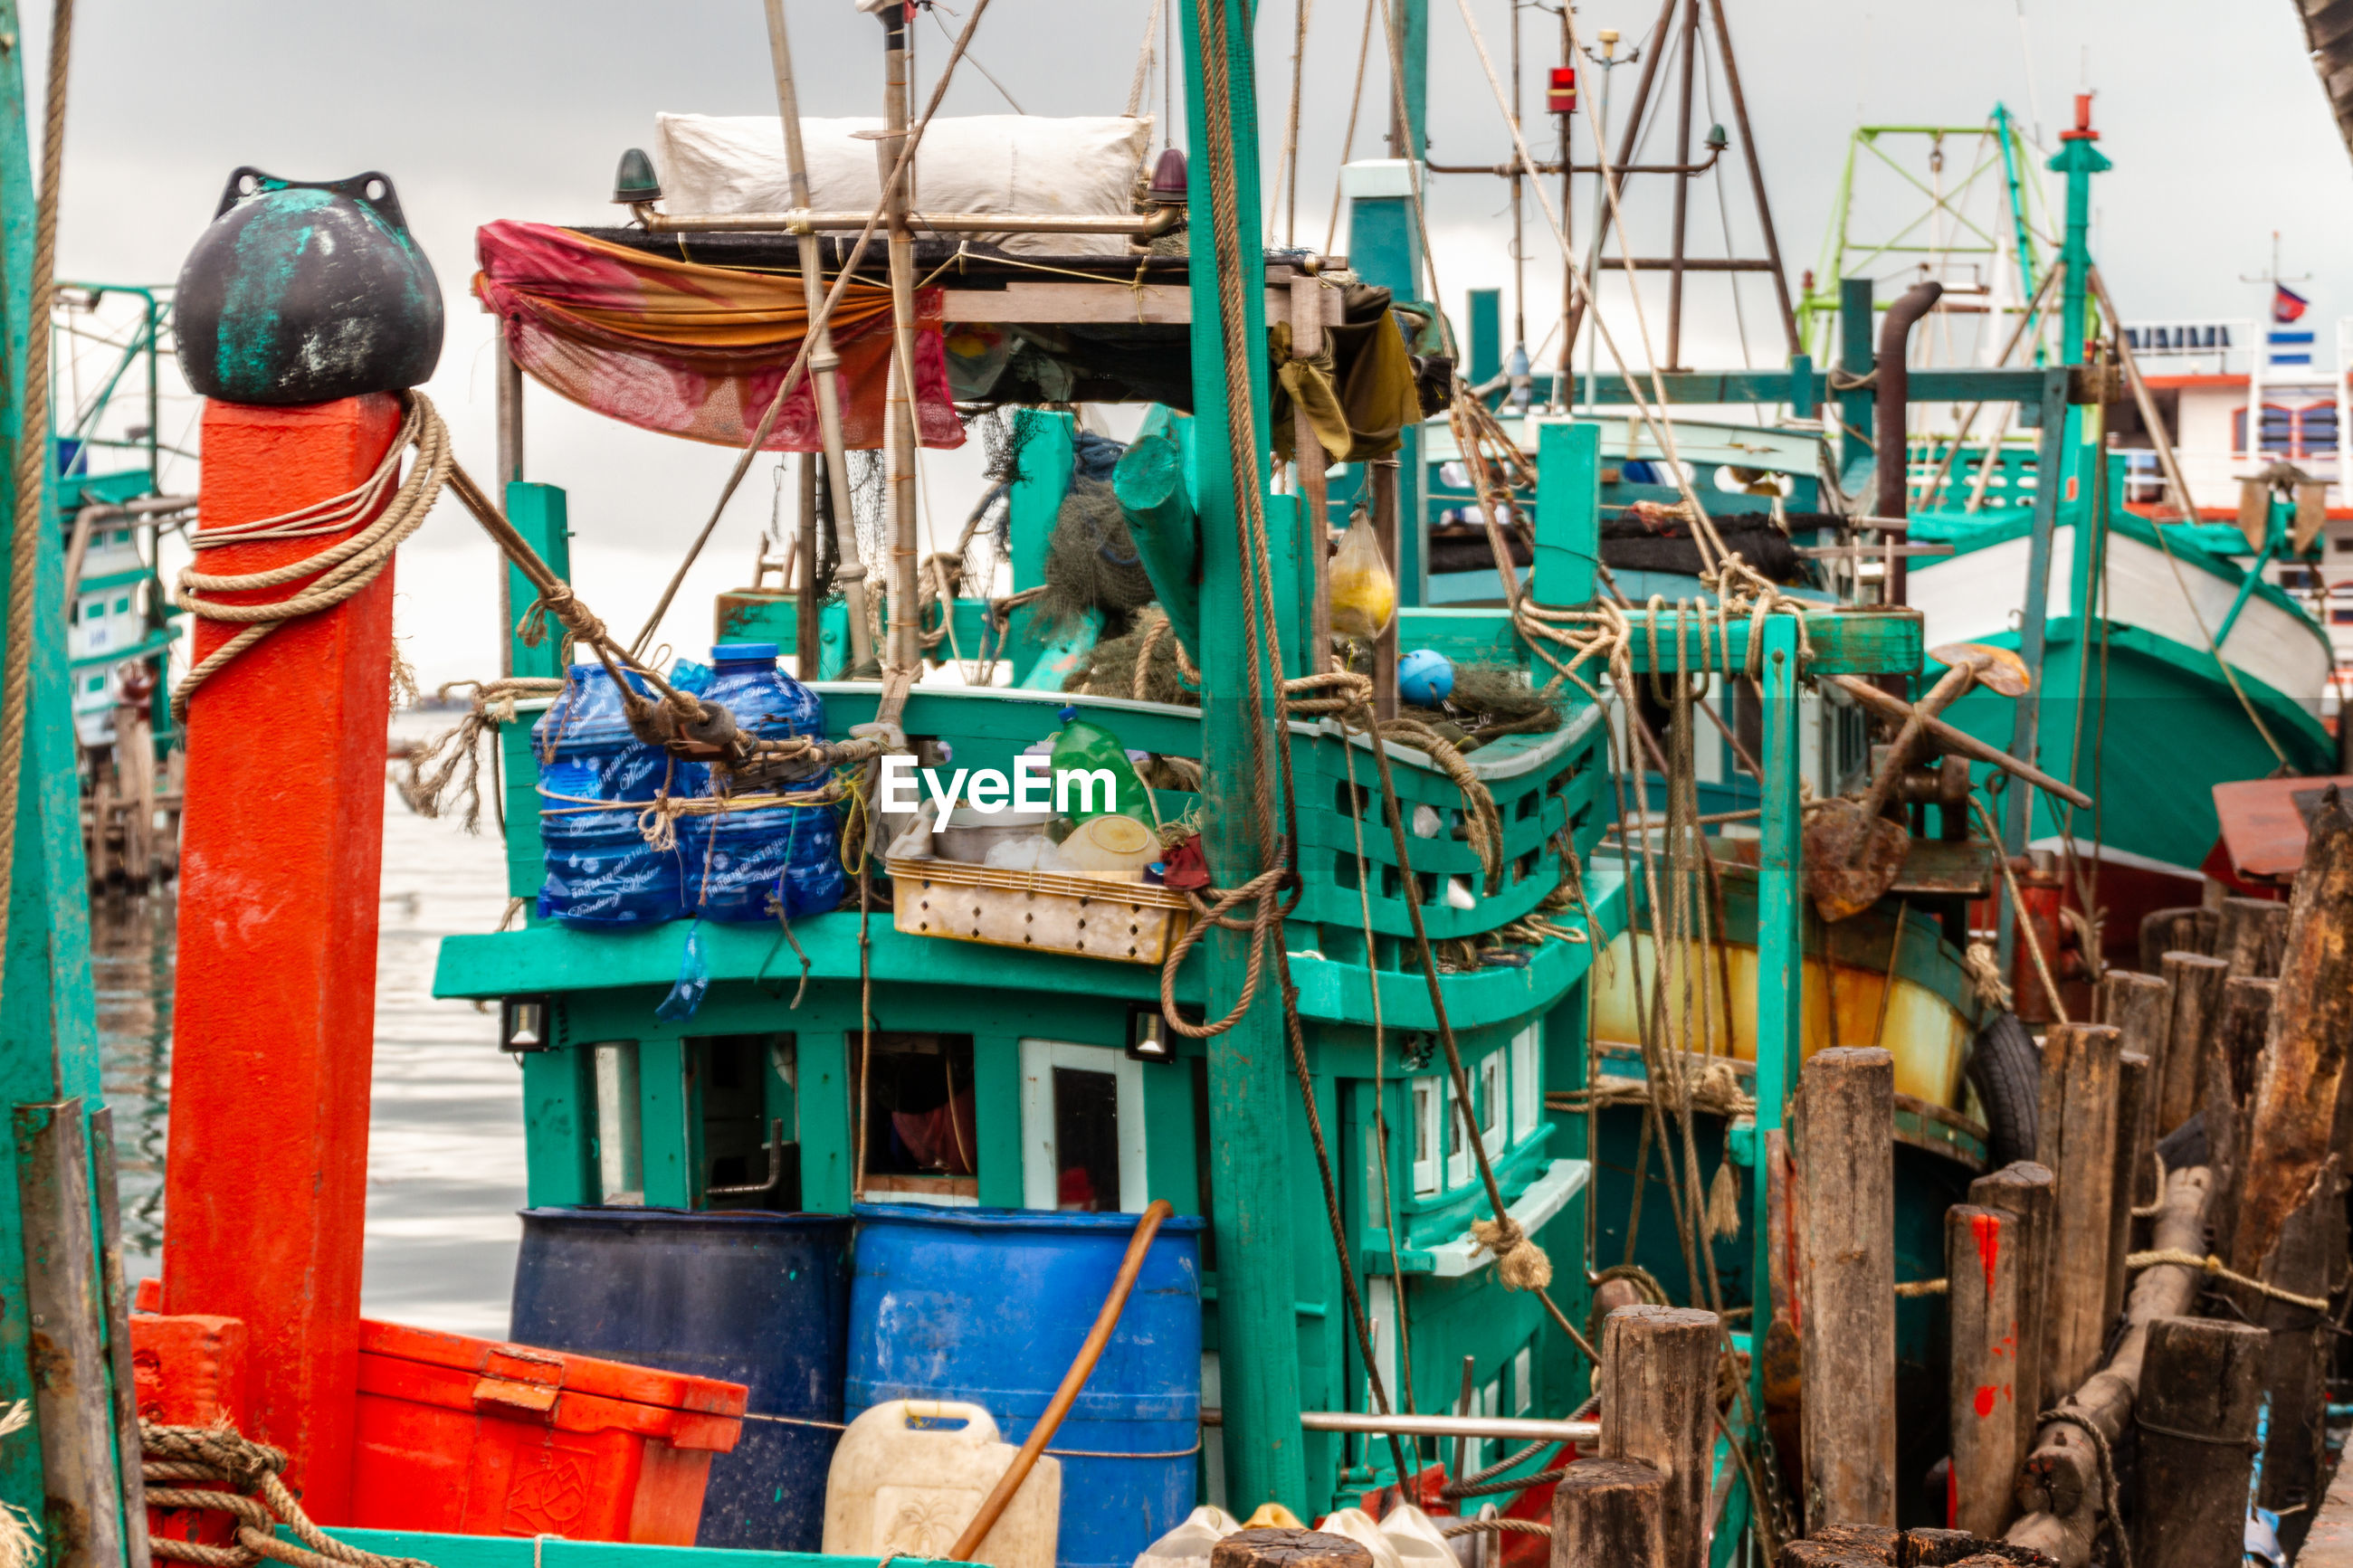 VIEW OF FISHING BOATS MOORED IN HARBOR